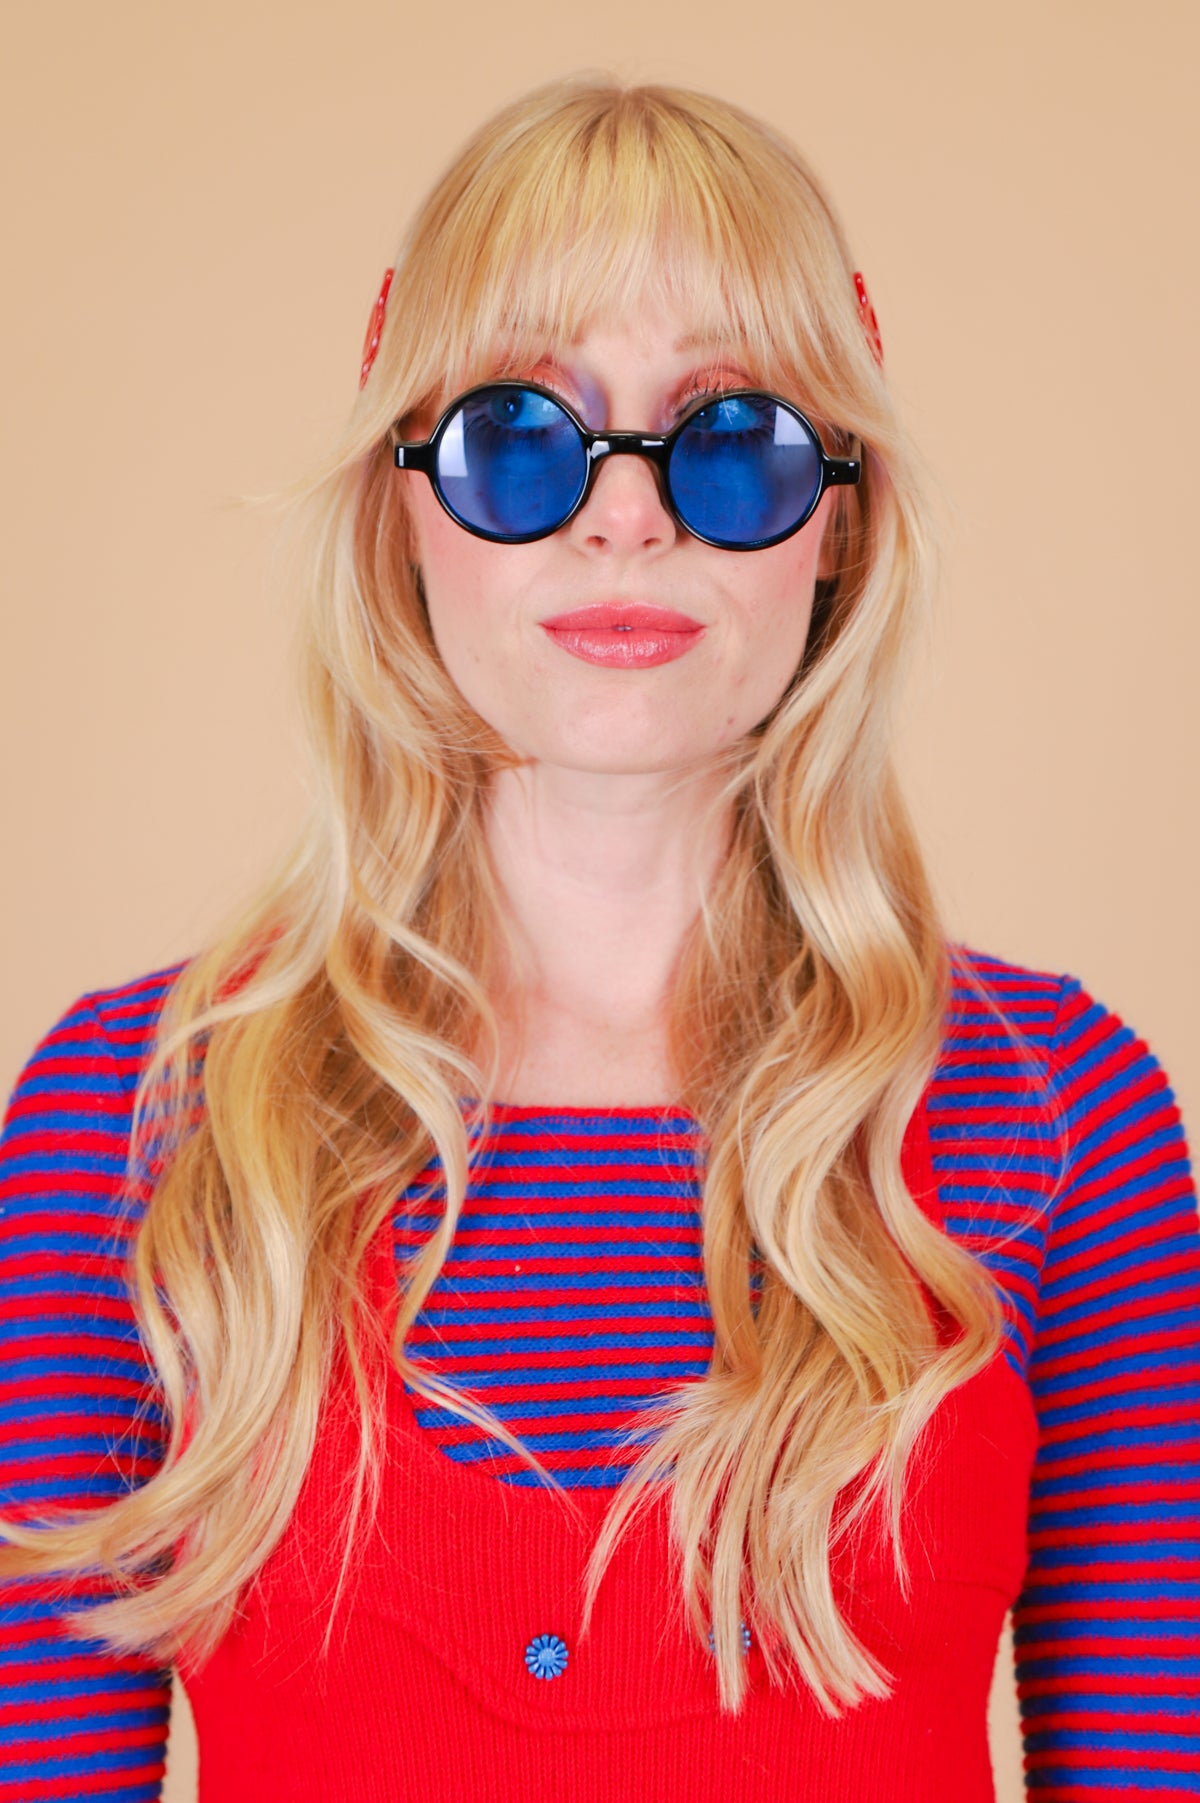 Karina Sunglasses in Blue